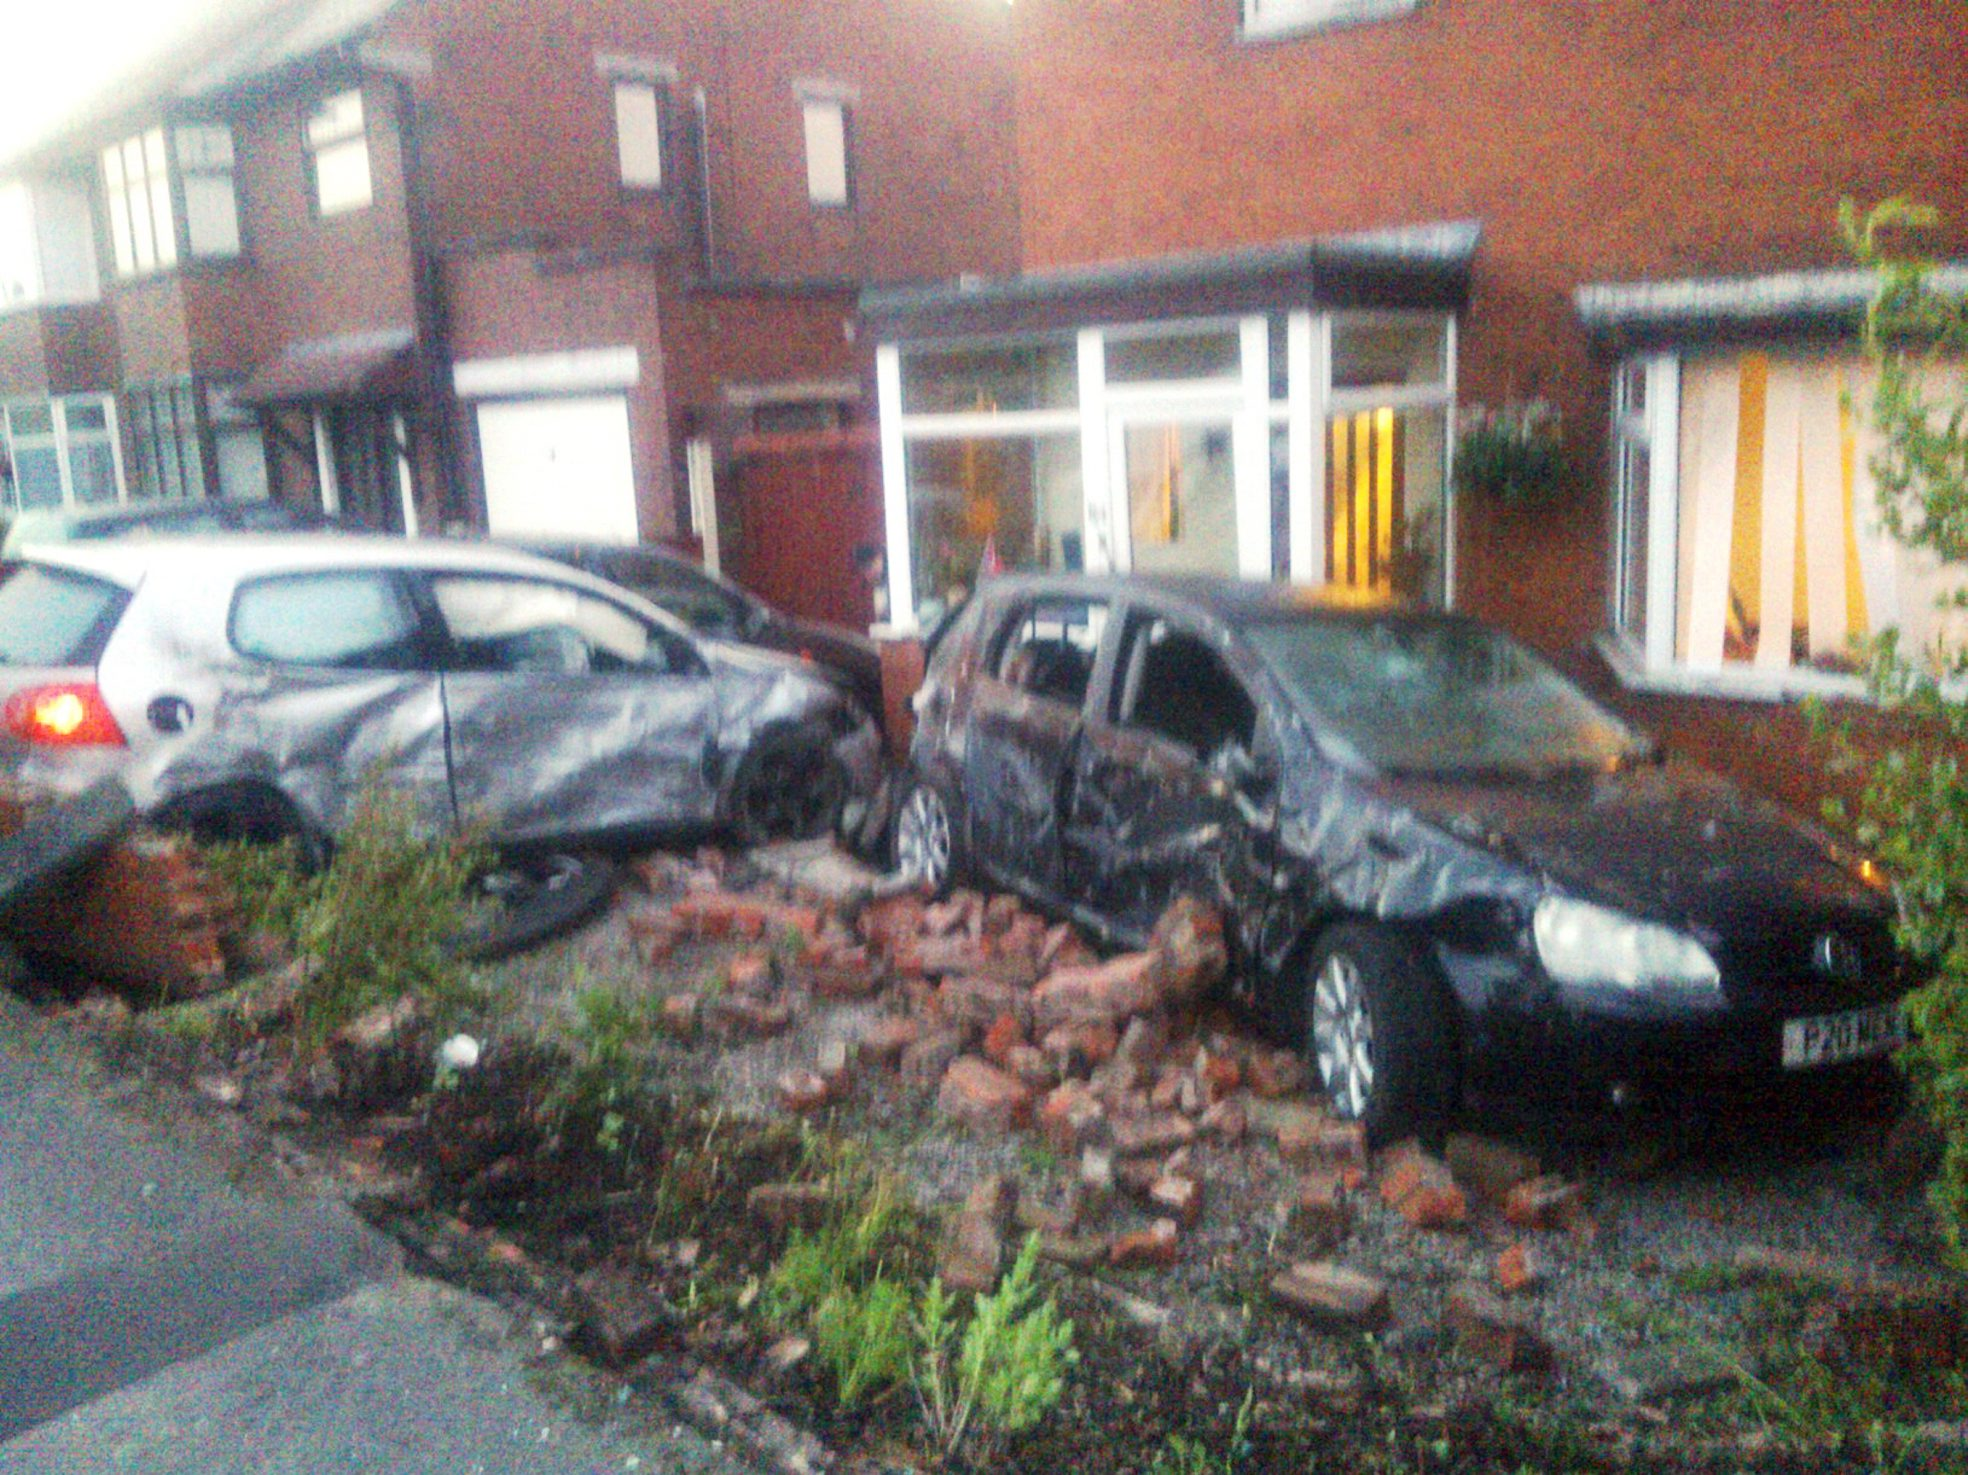 UPDATED: Police hunting three people after car crashes into garden wall in Little Lever